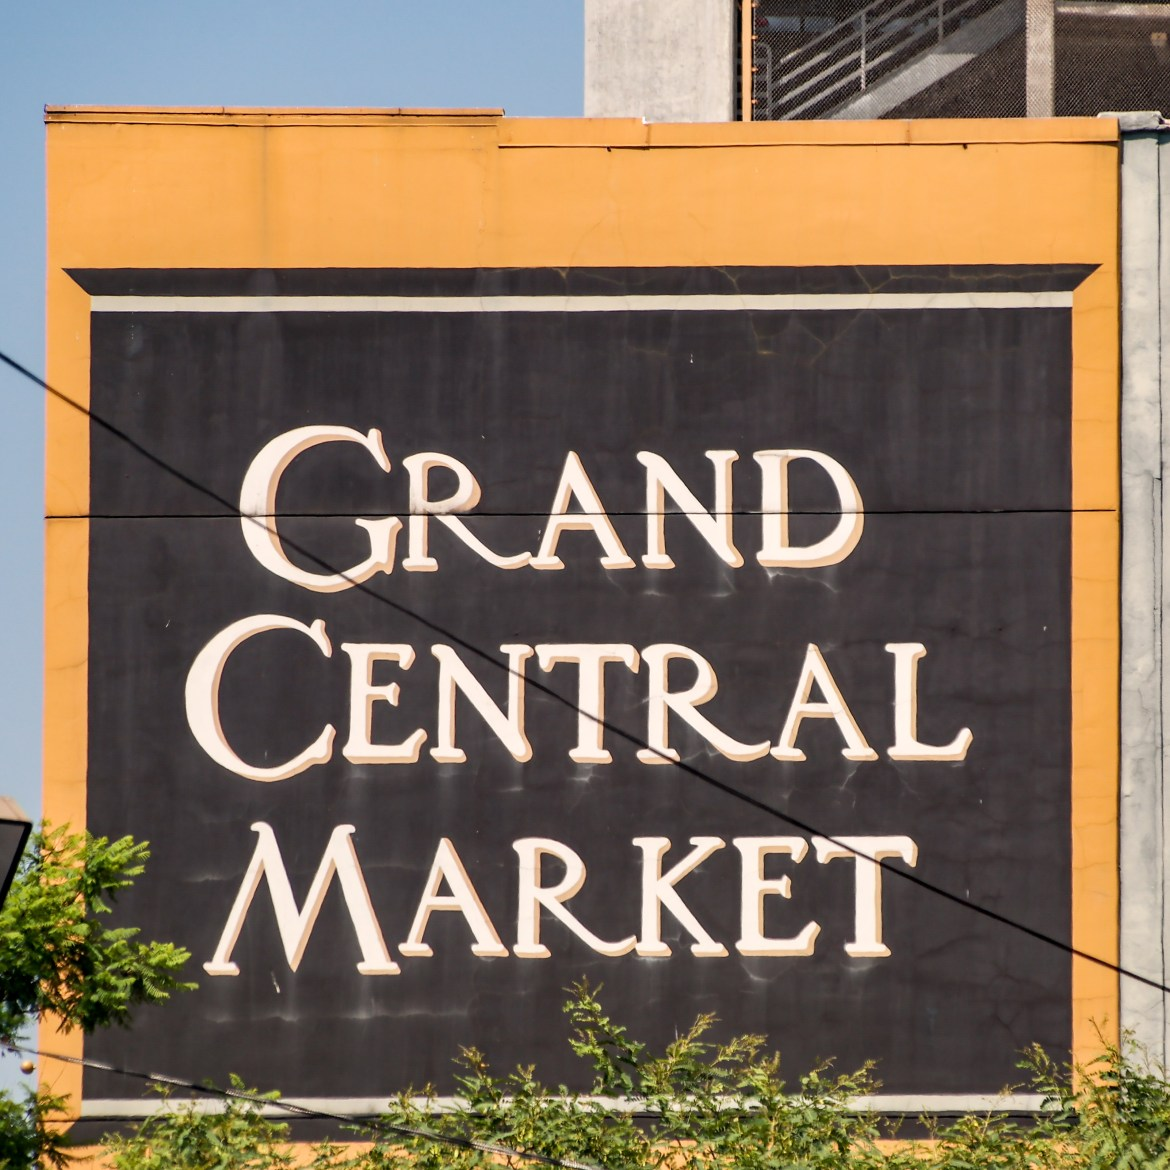 Grand Central Market Los Angeles California #grandcentralmarket